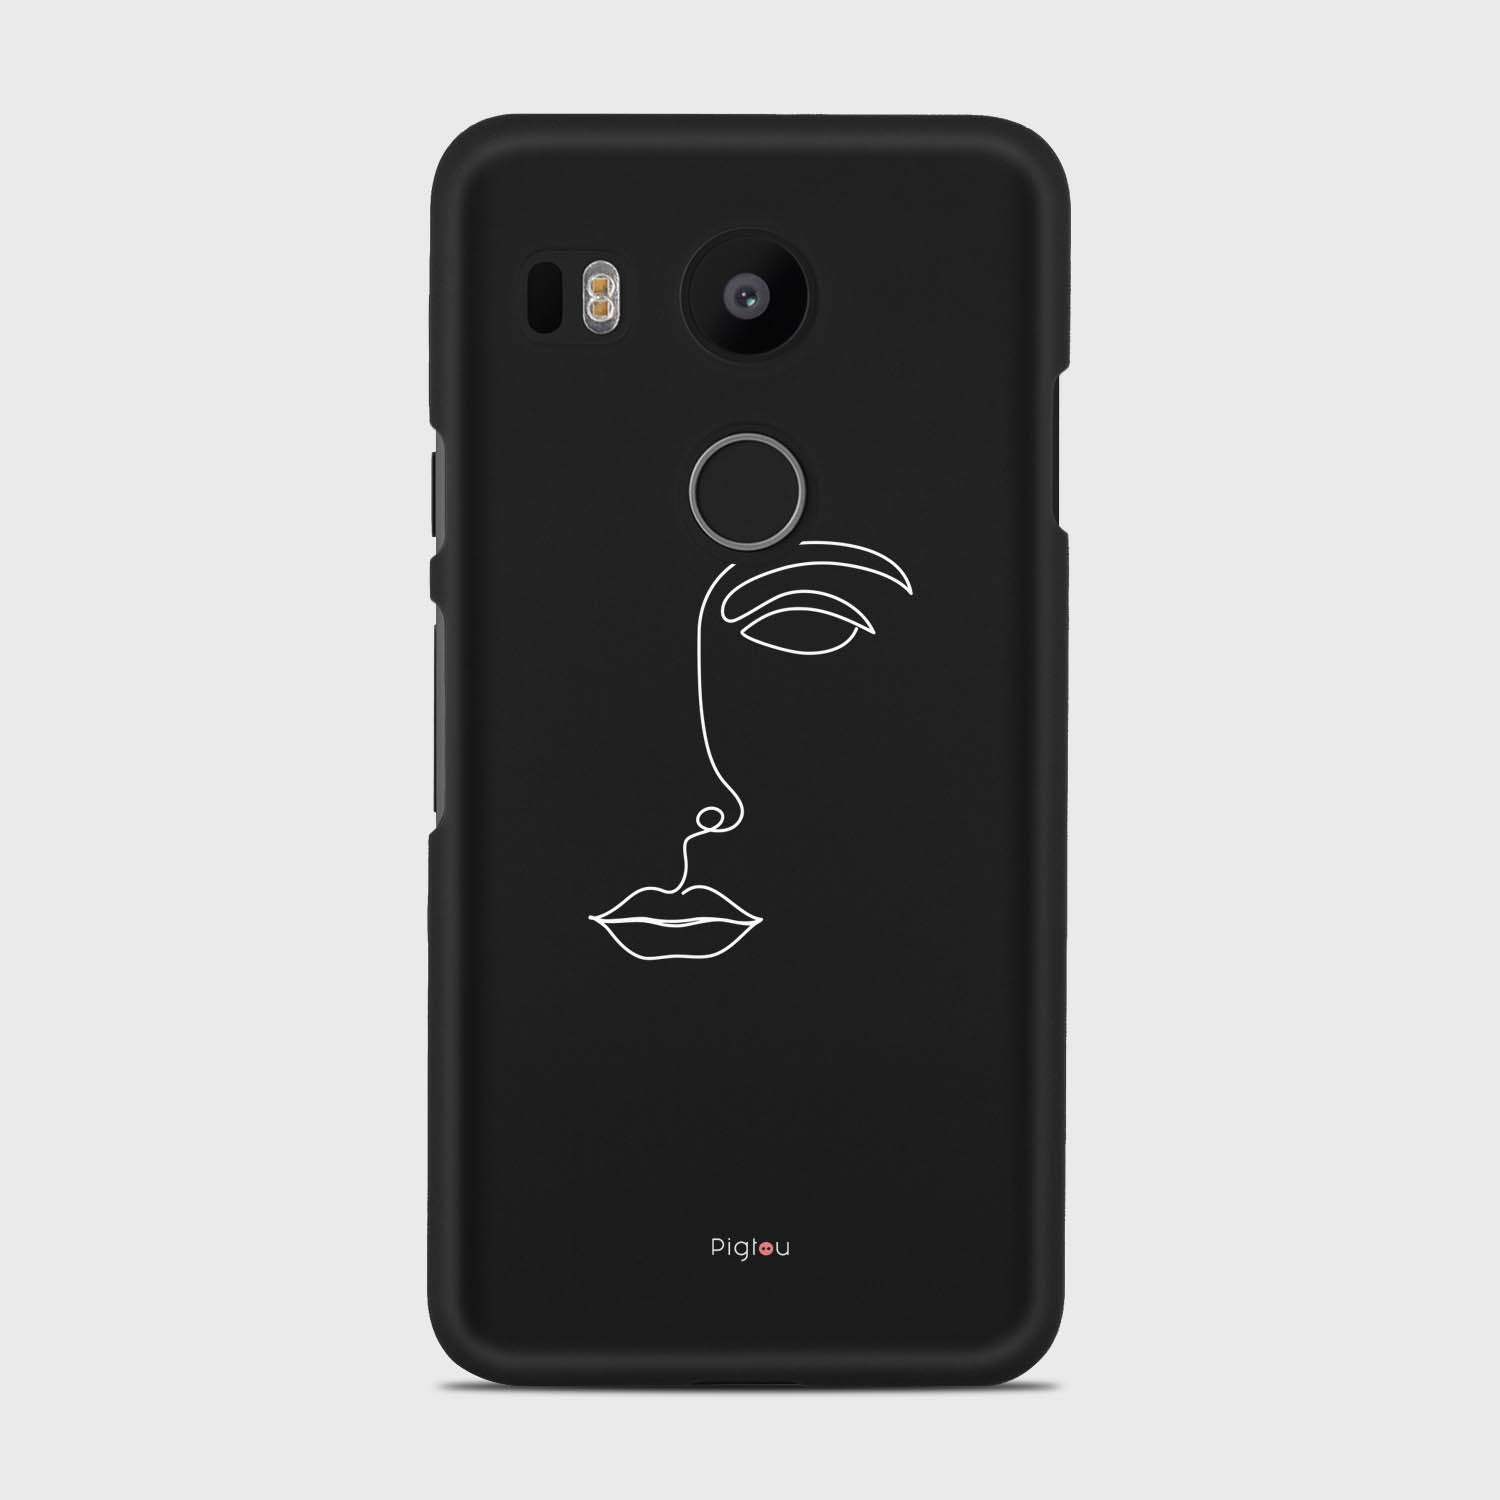 SILHOUETTE FACE Google Nexus 5X cases | Pigtou